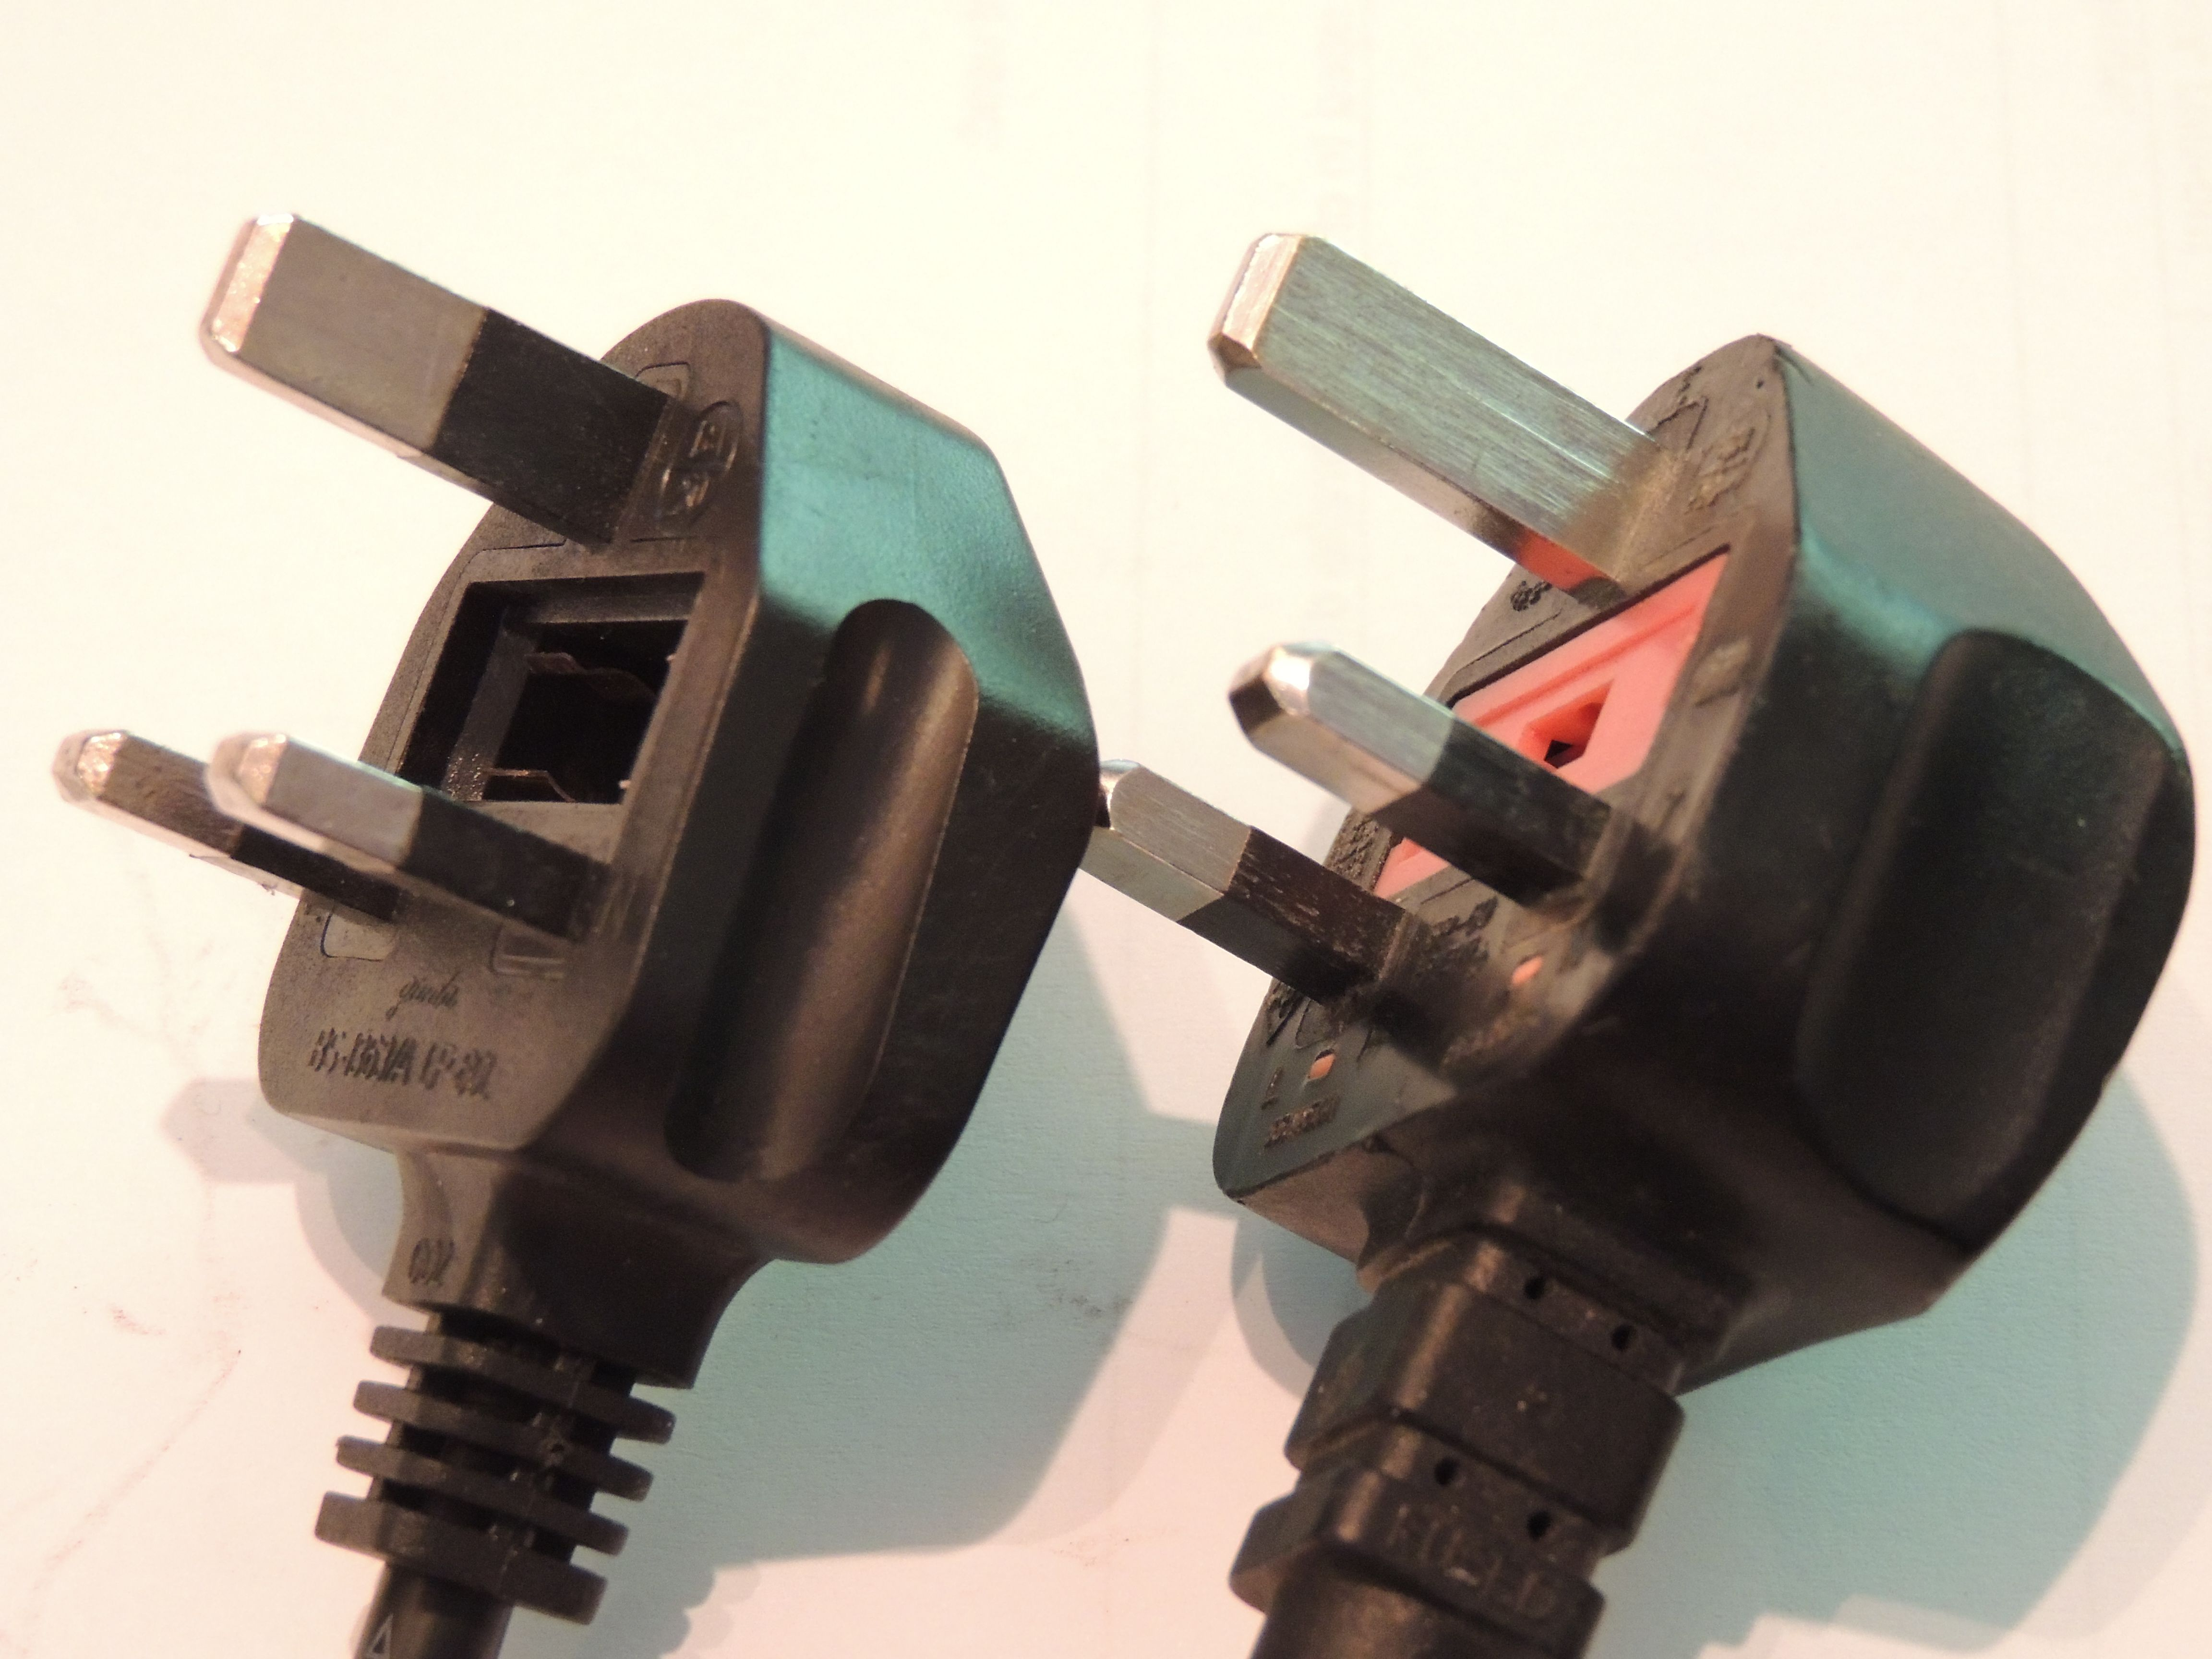 Warning Look At These Two Plugs The Left Plug Has Insulation On Wiring A Earth Pin